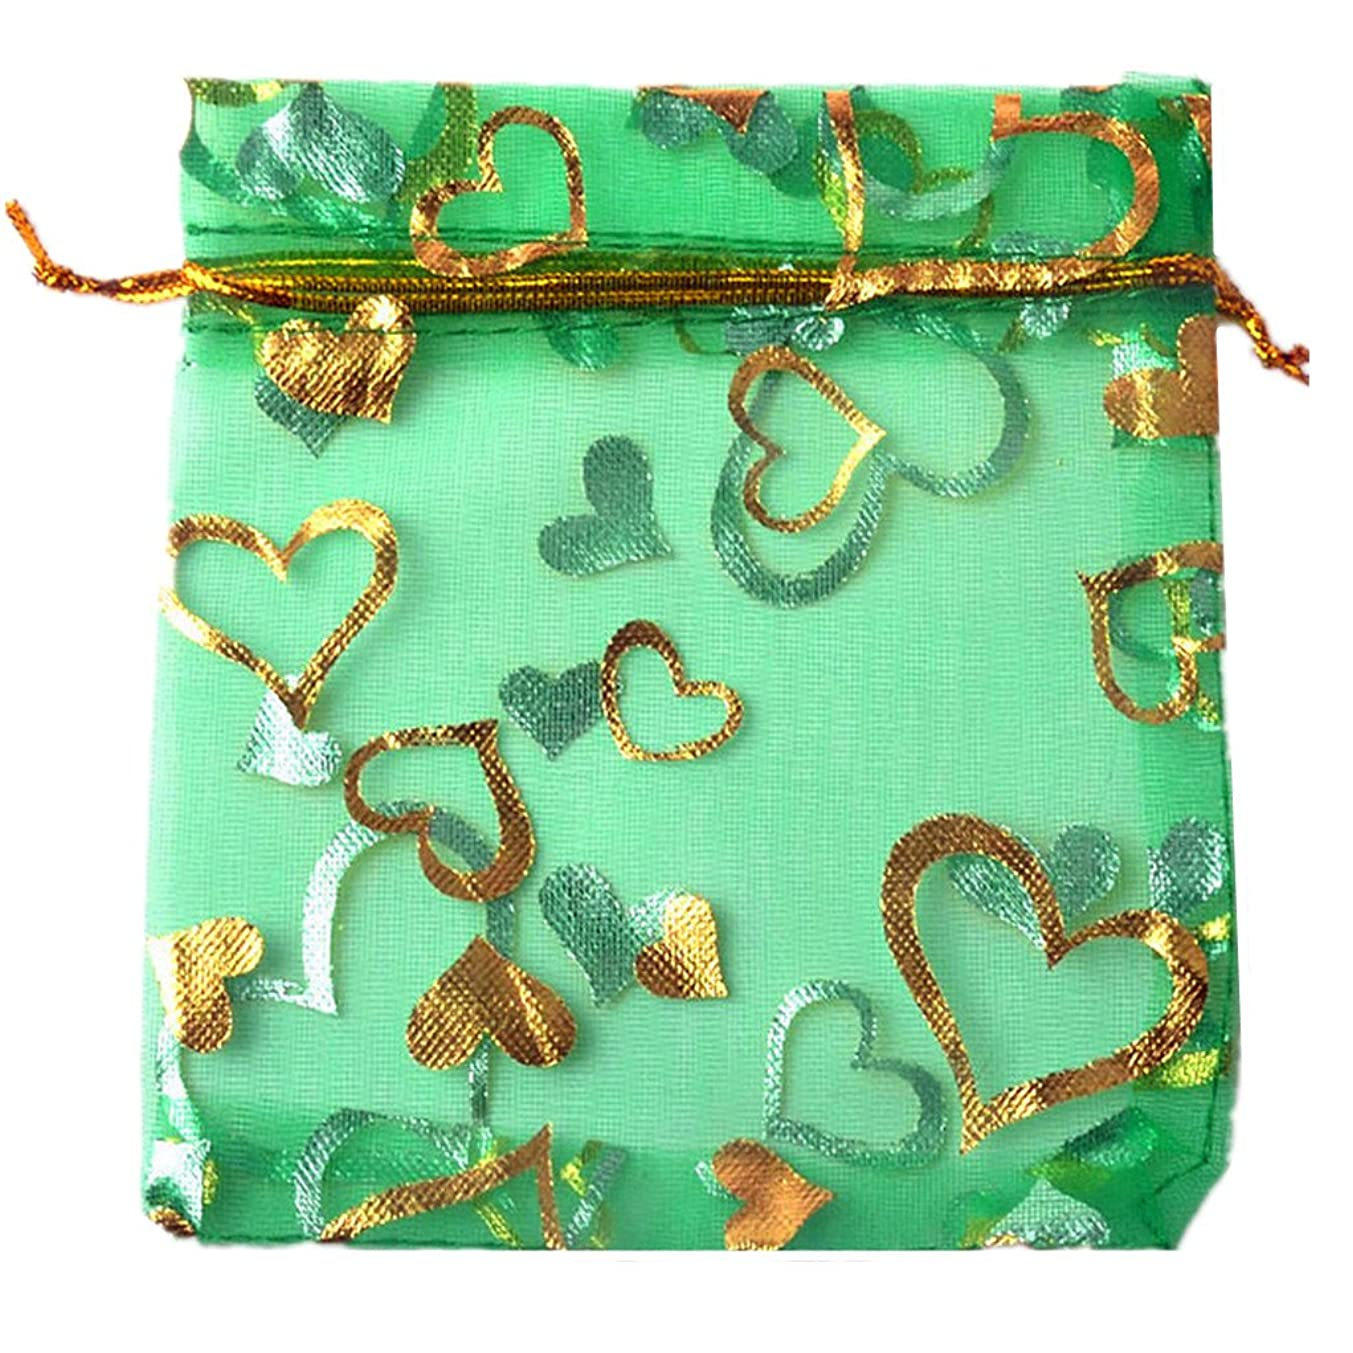 100pcs Organza Wedding Party Gift Bags Heart Pattern Sheer Drawstring Pouches Jewelry Gift Bags Christmas Party Gift Favor Bags (green, 3